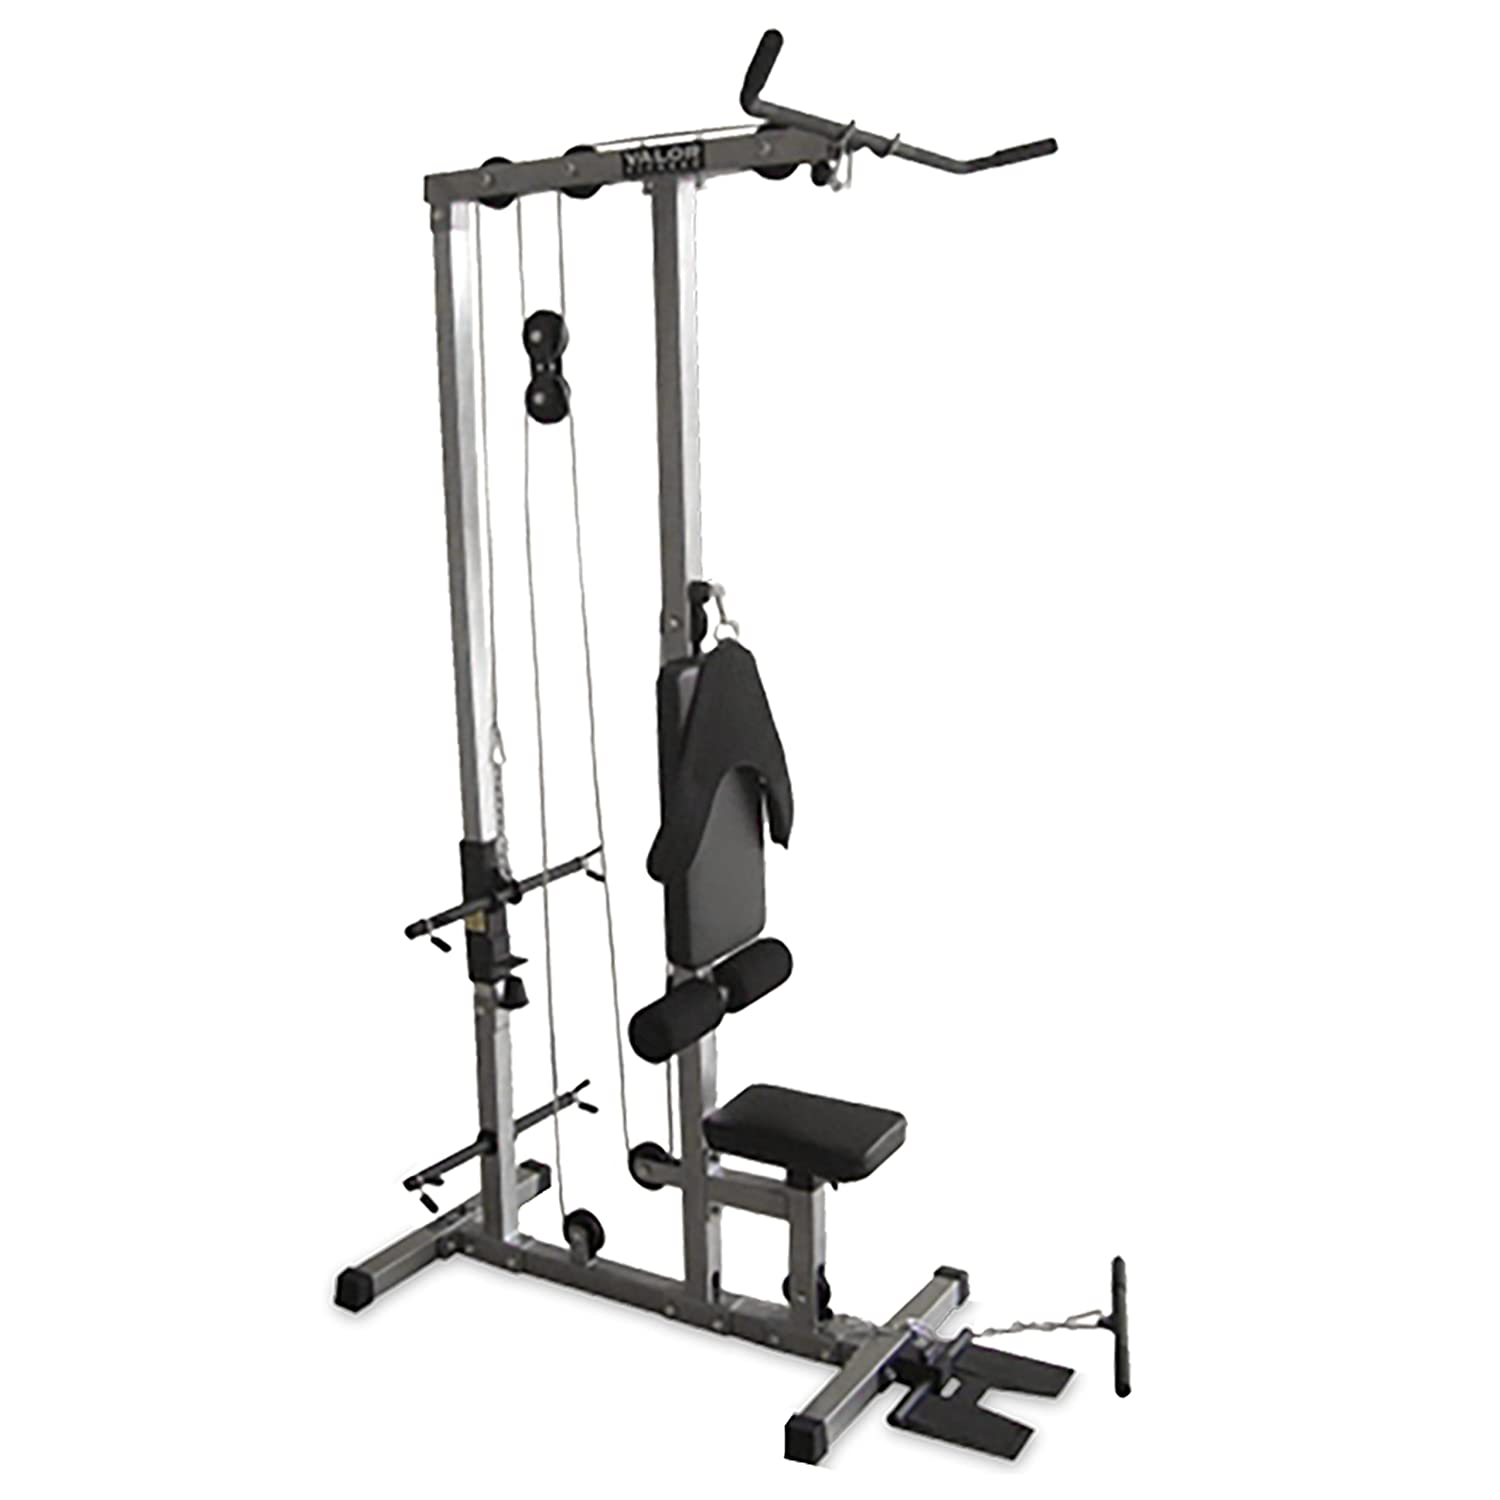 Gym Equipment Names Pics August 2018